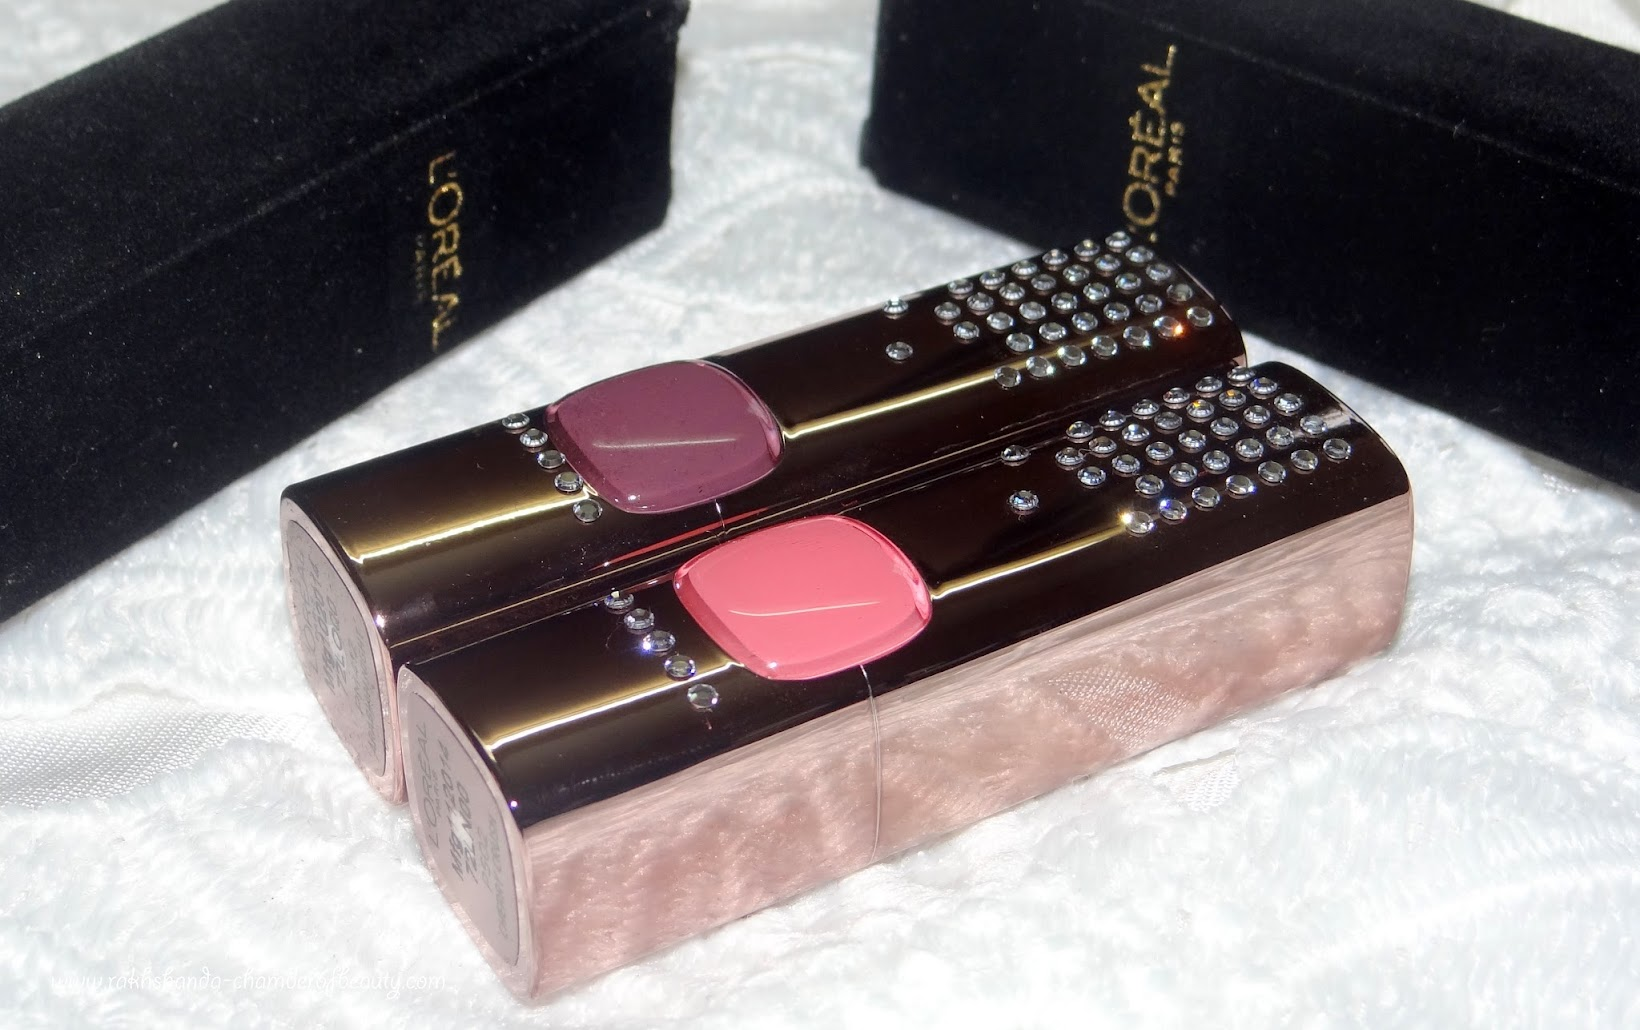 L'Oreal Paris Color Riche Swarovski Moist Matte lipsticks- review, swatches & price in India, Limited Edition Cannes 2015 Collection, L'Oreal Paris lipsticks, Arabian Night, Cherry Crush, Indian Beauty Blogger